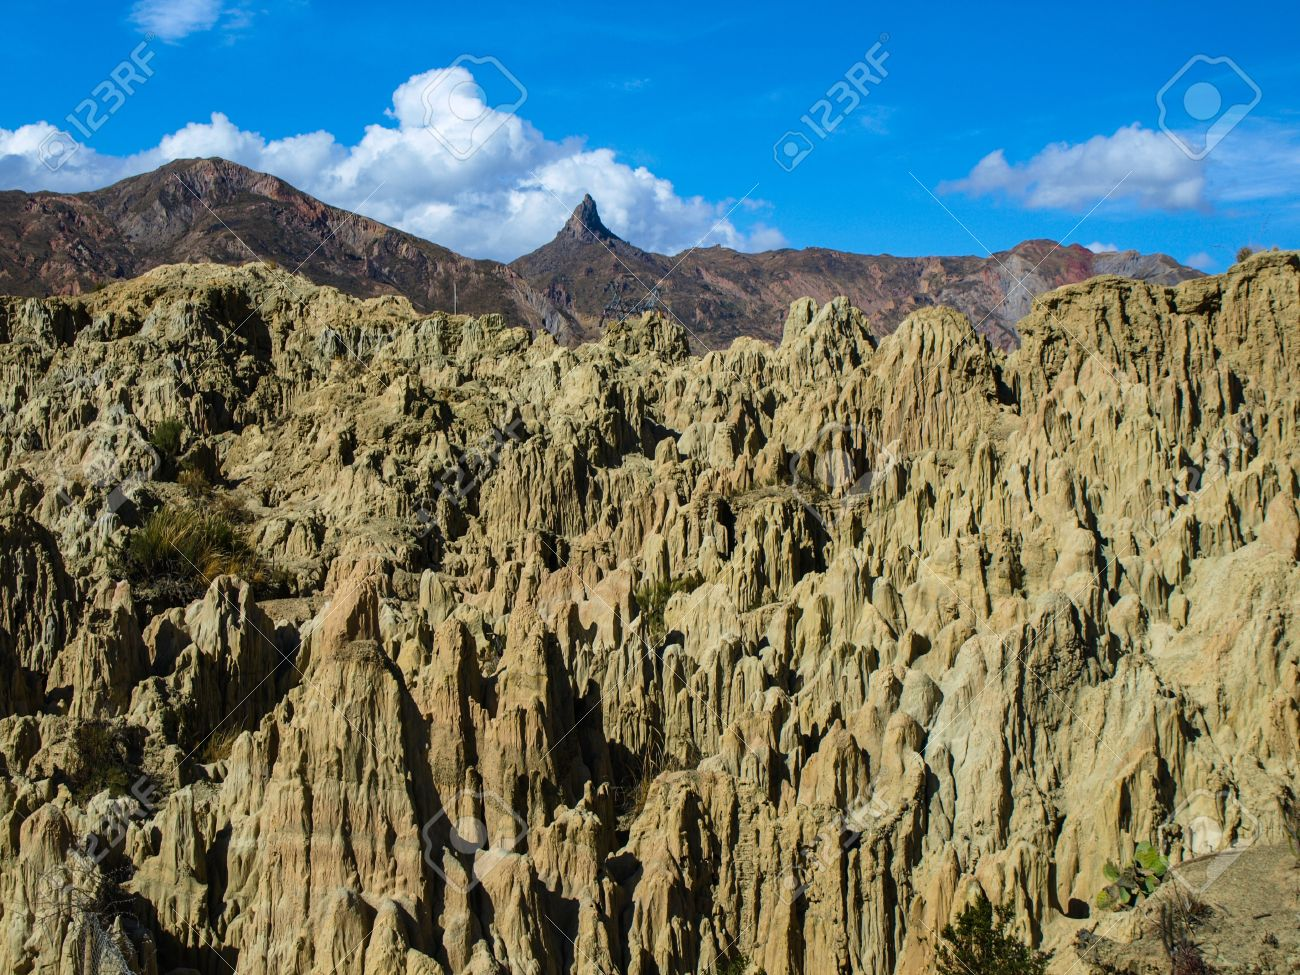 Valley Of The Moon Valle De La Luna Near La Paz Bolivia Stock Photo Picture And Royalty Free Image Image 21131282